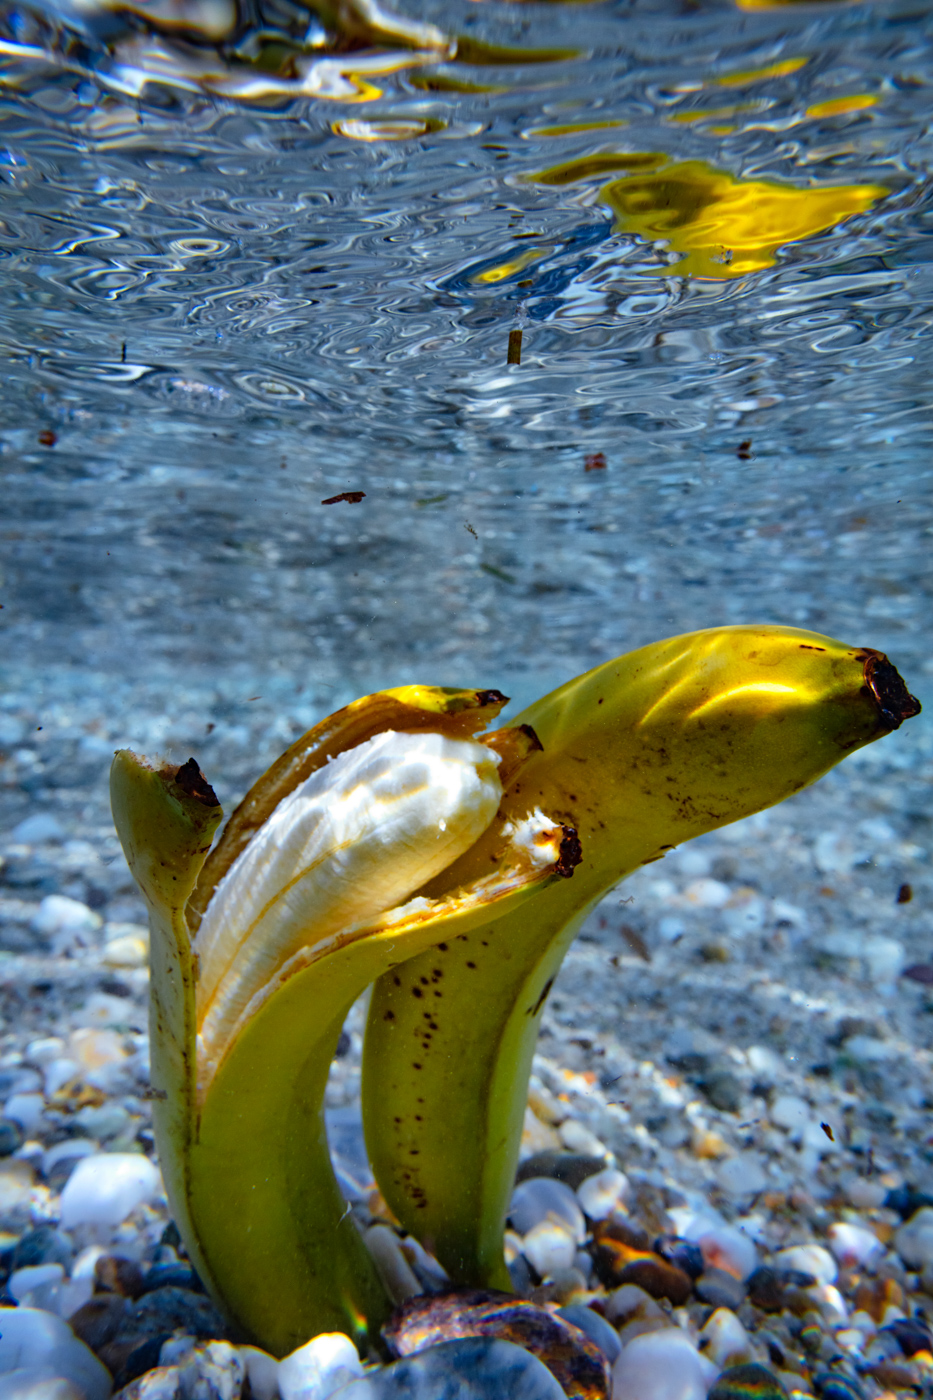 Bananas on the bottom of the ocean